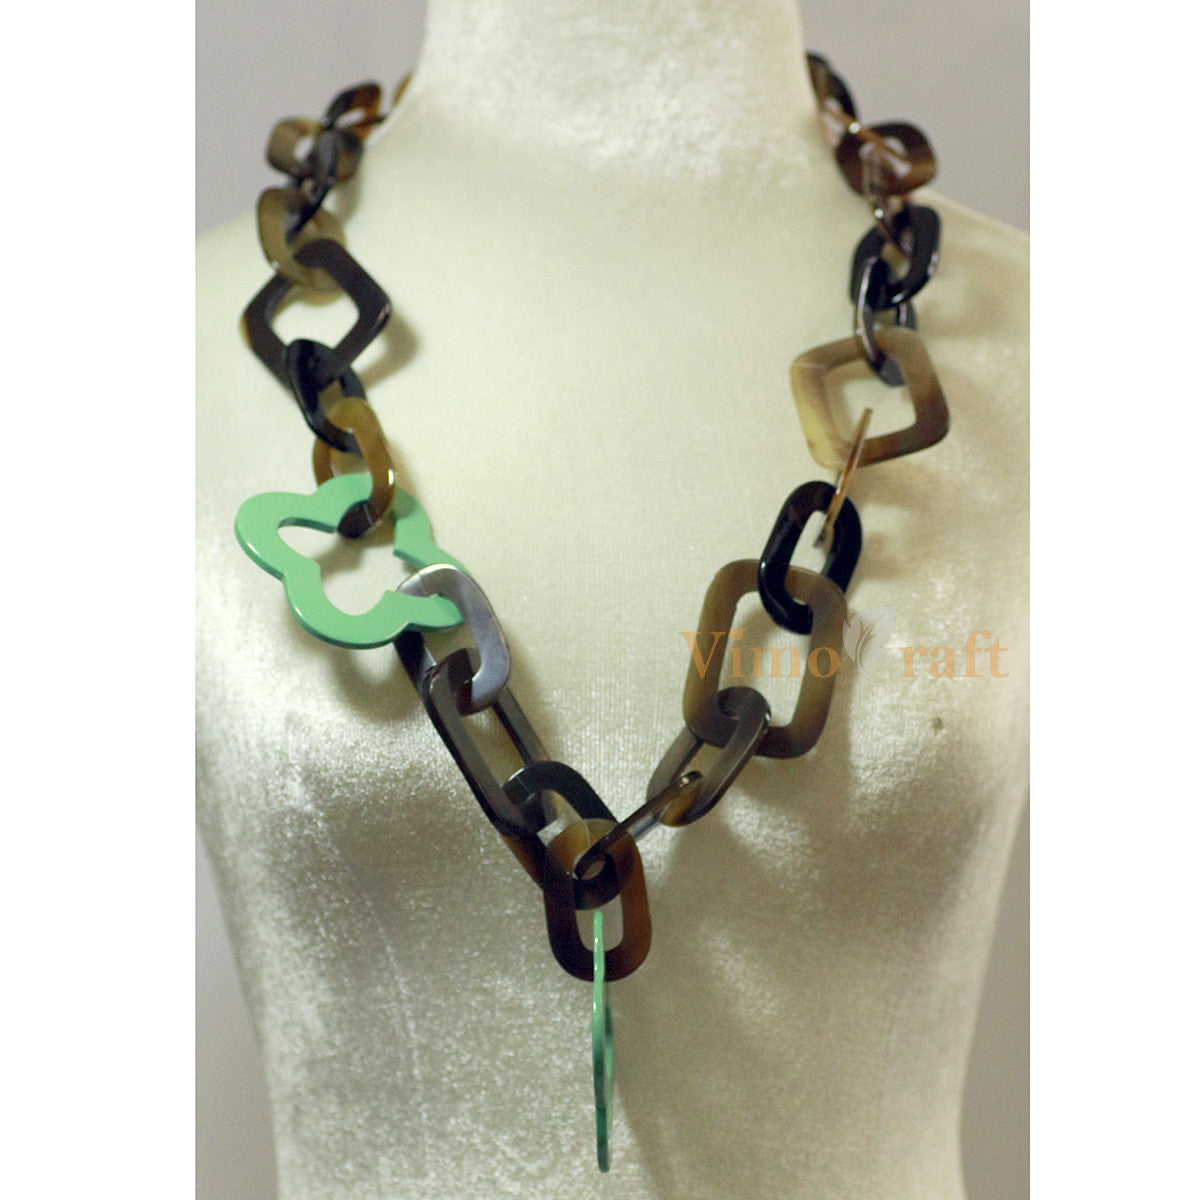 Horn &Amp; Lacquer Chain Necklace   Vcsm 02